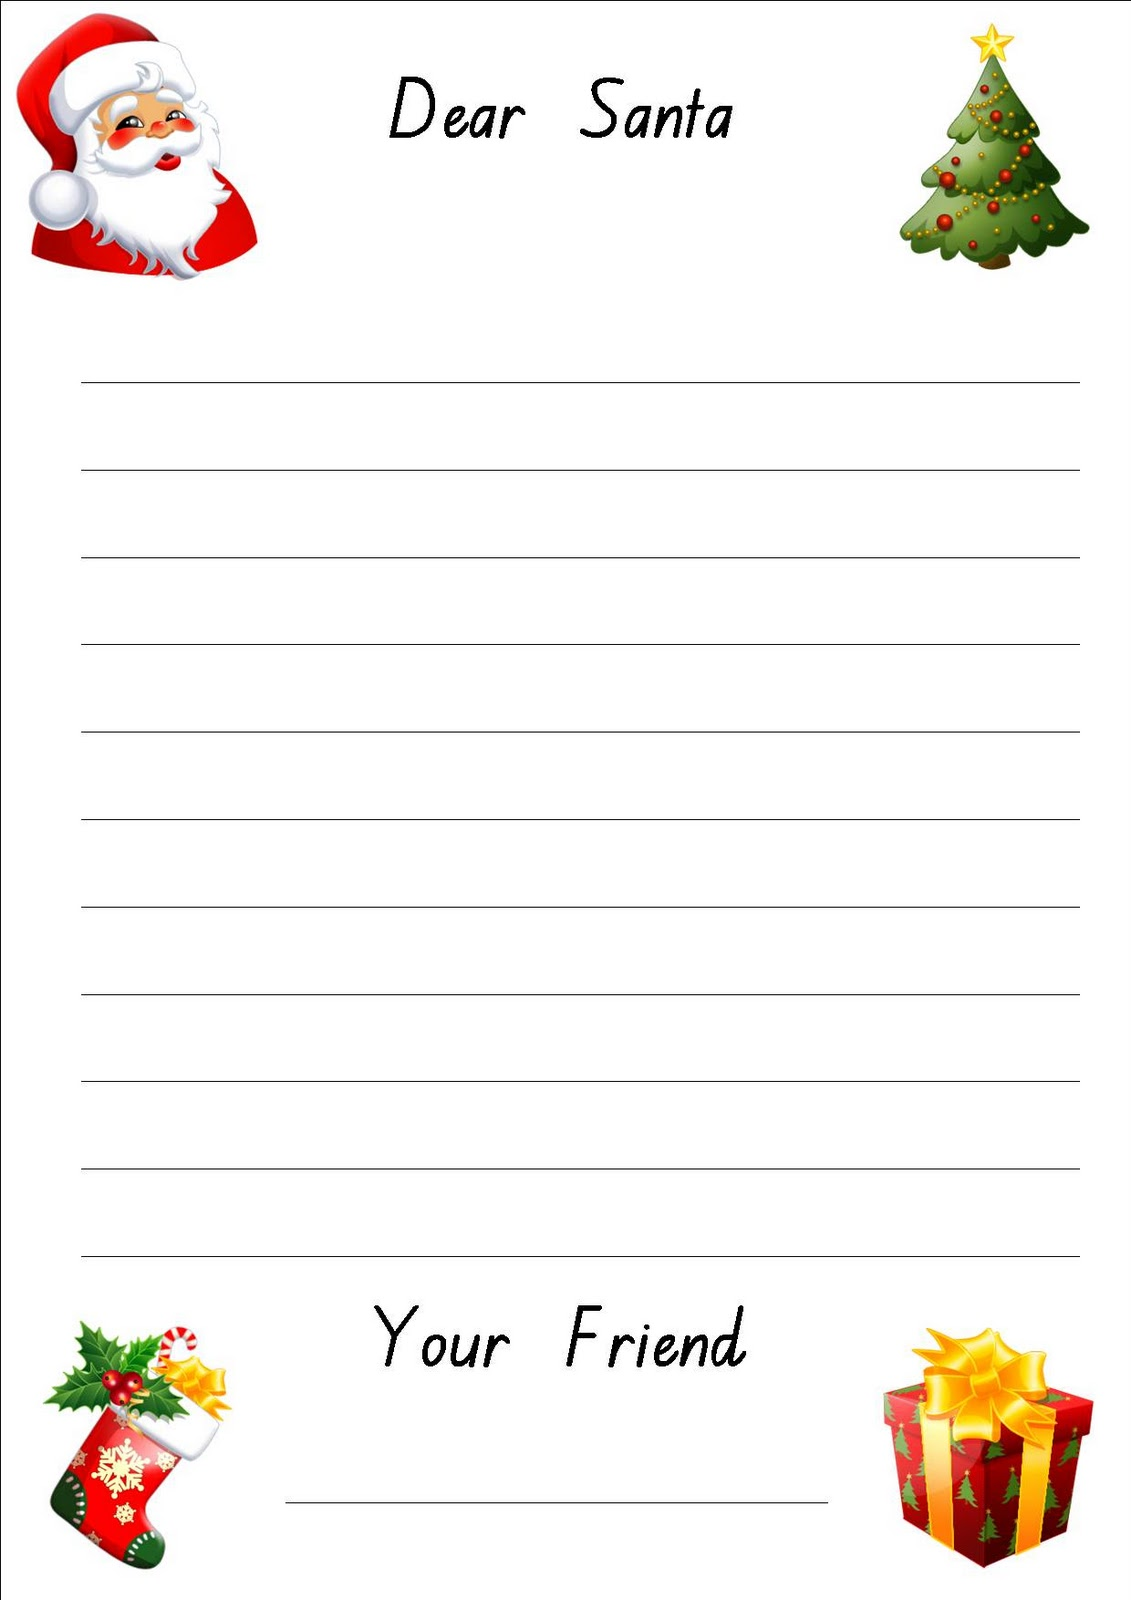 christmas writing paper for kids These christmas creative writing ideas can help you and your students to come up with new ways to express yourself creatively while sugar plums dance in your head.